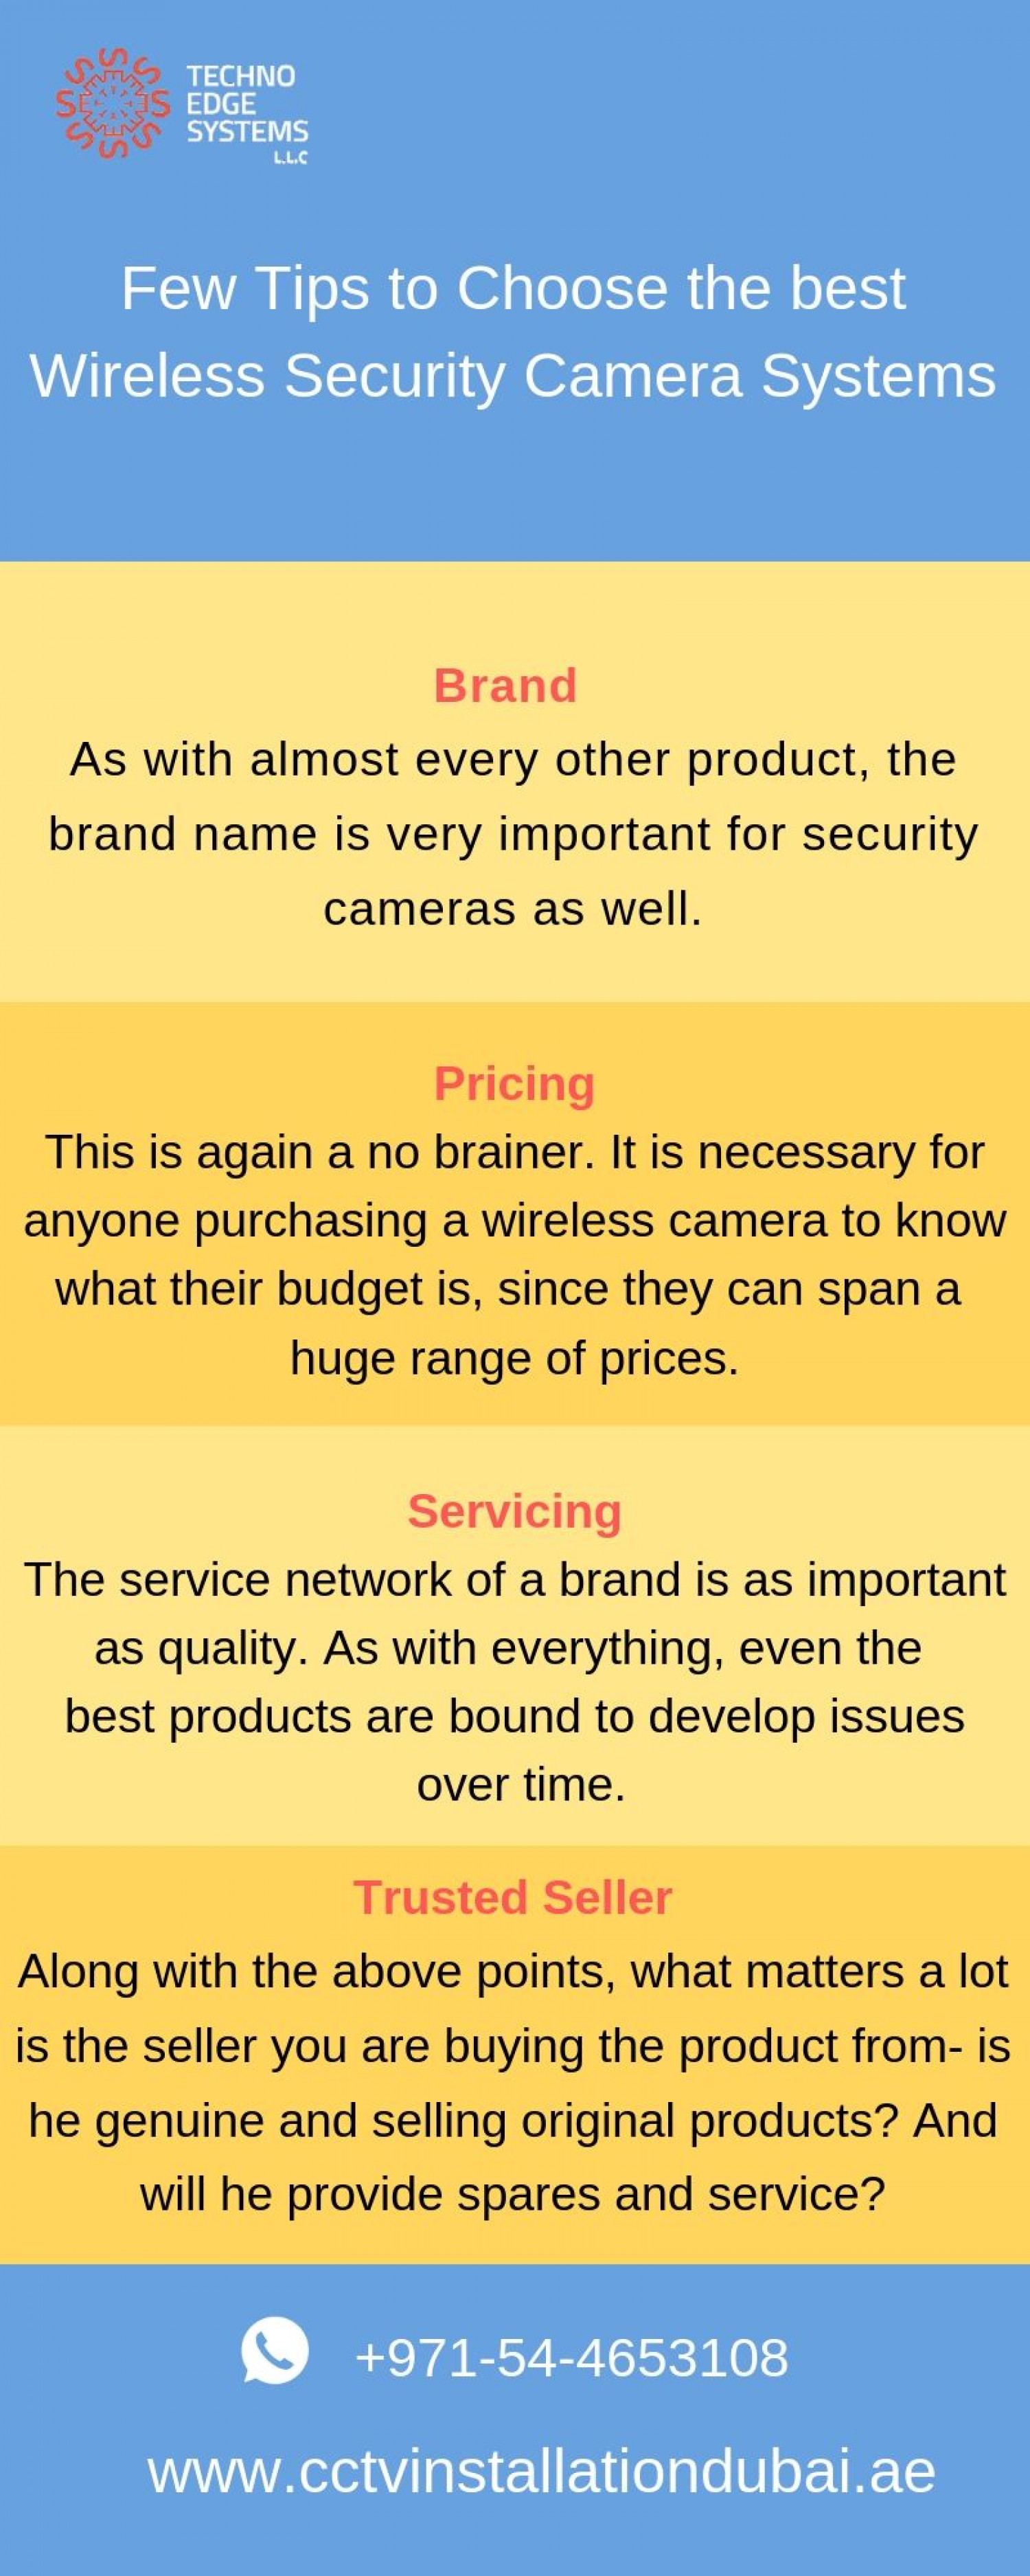 Few tips  to choose the best Wireless Security Camera Systems Infographic